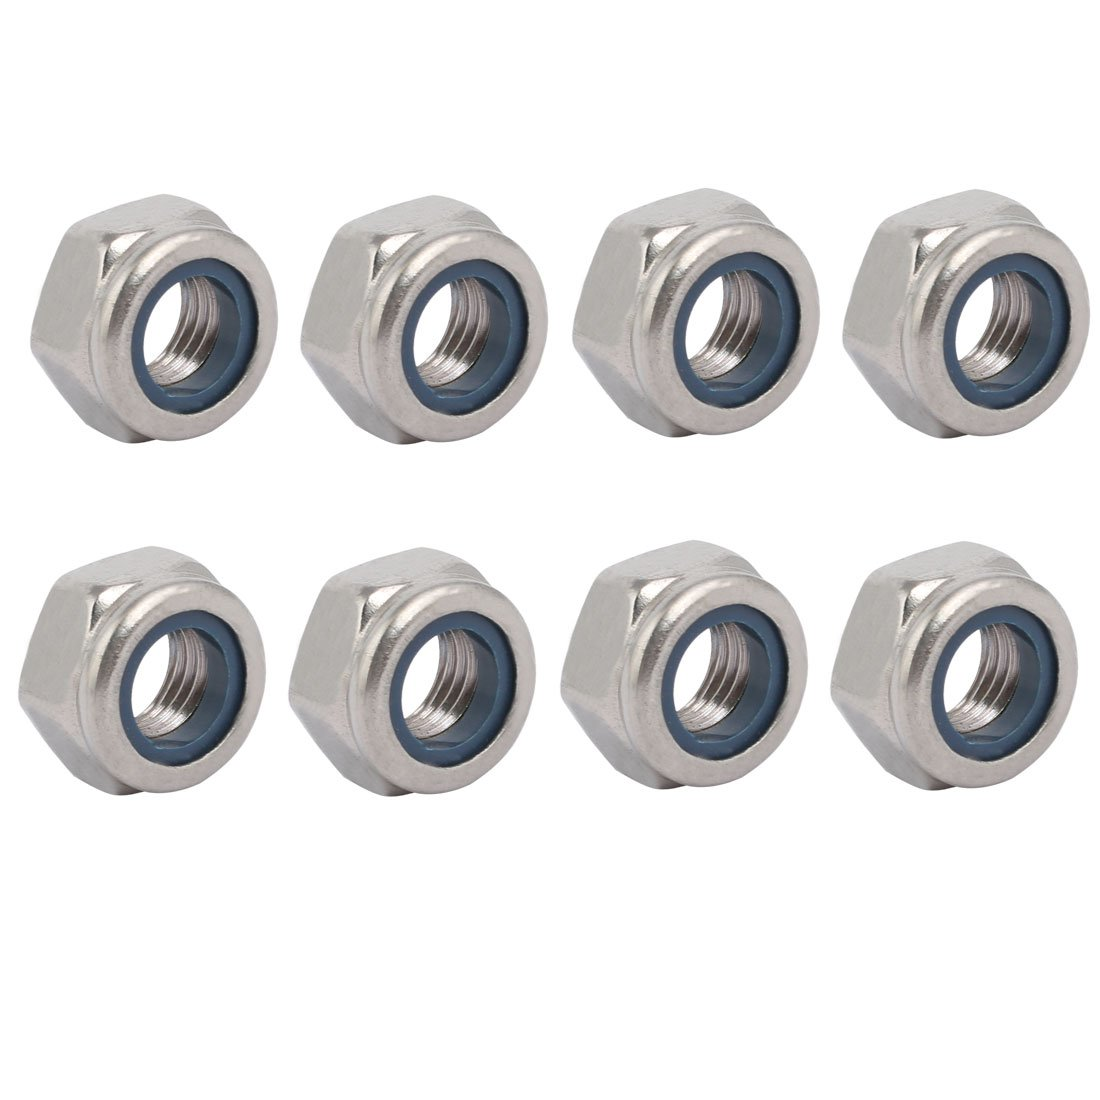 uxcell 8pcs M10 x 1.25mm Pitch Metric Fine Thread 304 Stainless Steel Hex Lock Nuts